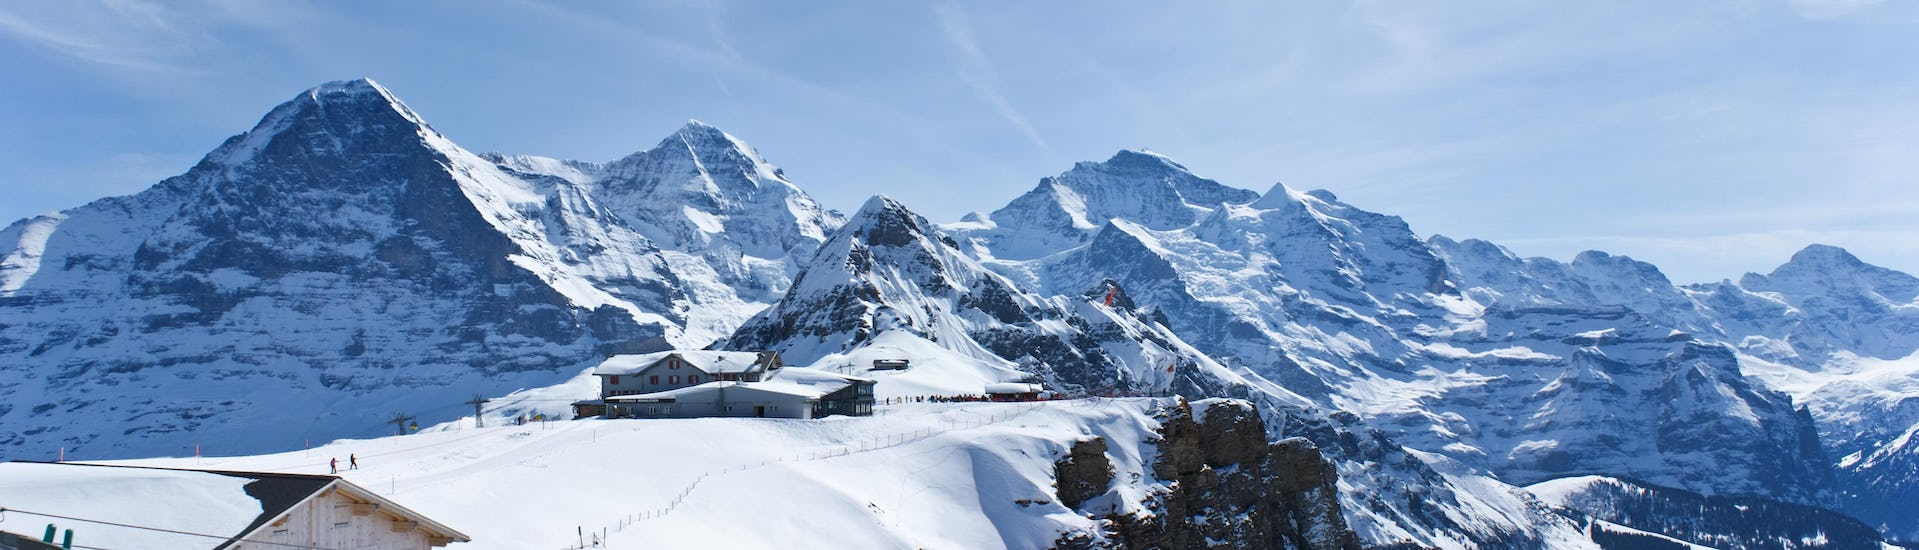 View of the snowy mountain landscape surrounding the mountain station of the cable car in the swiss ski resort of Interlaken.